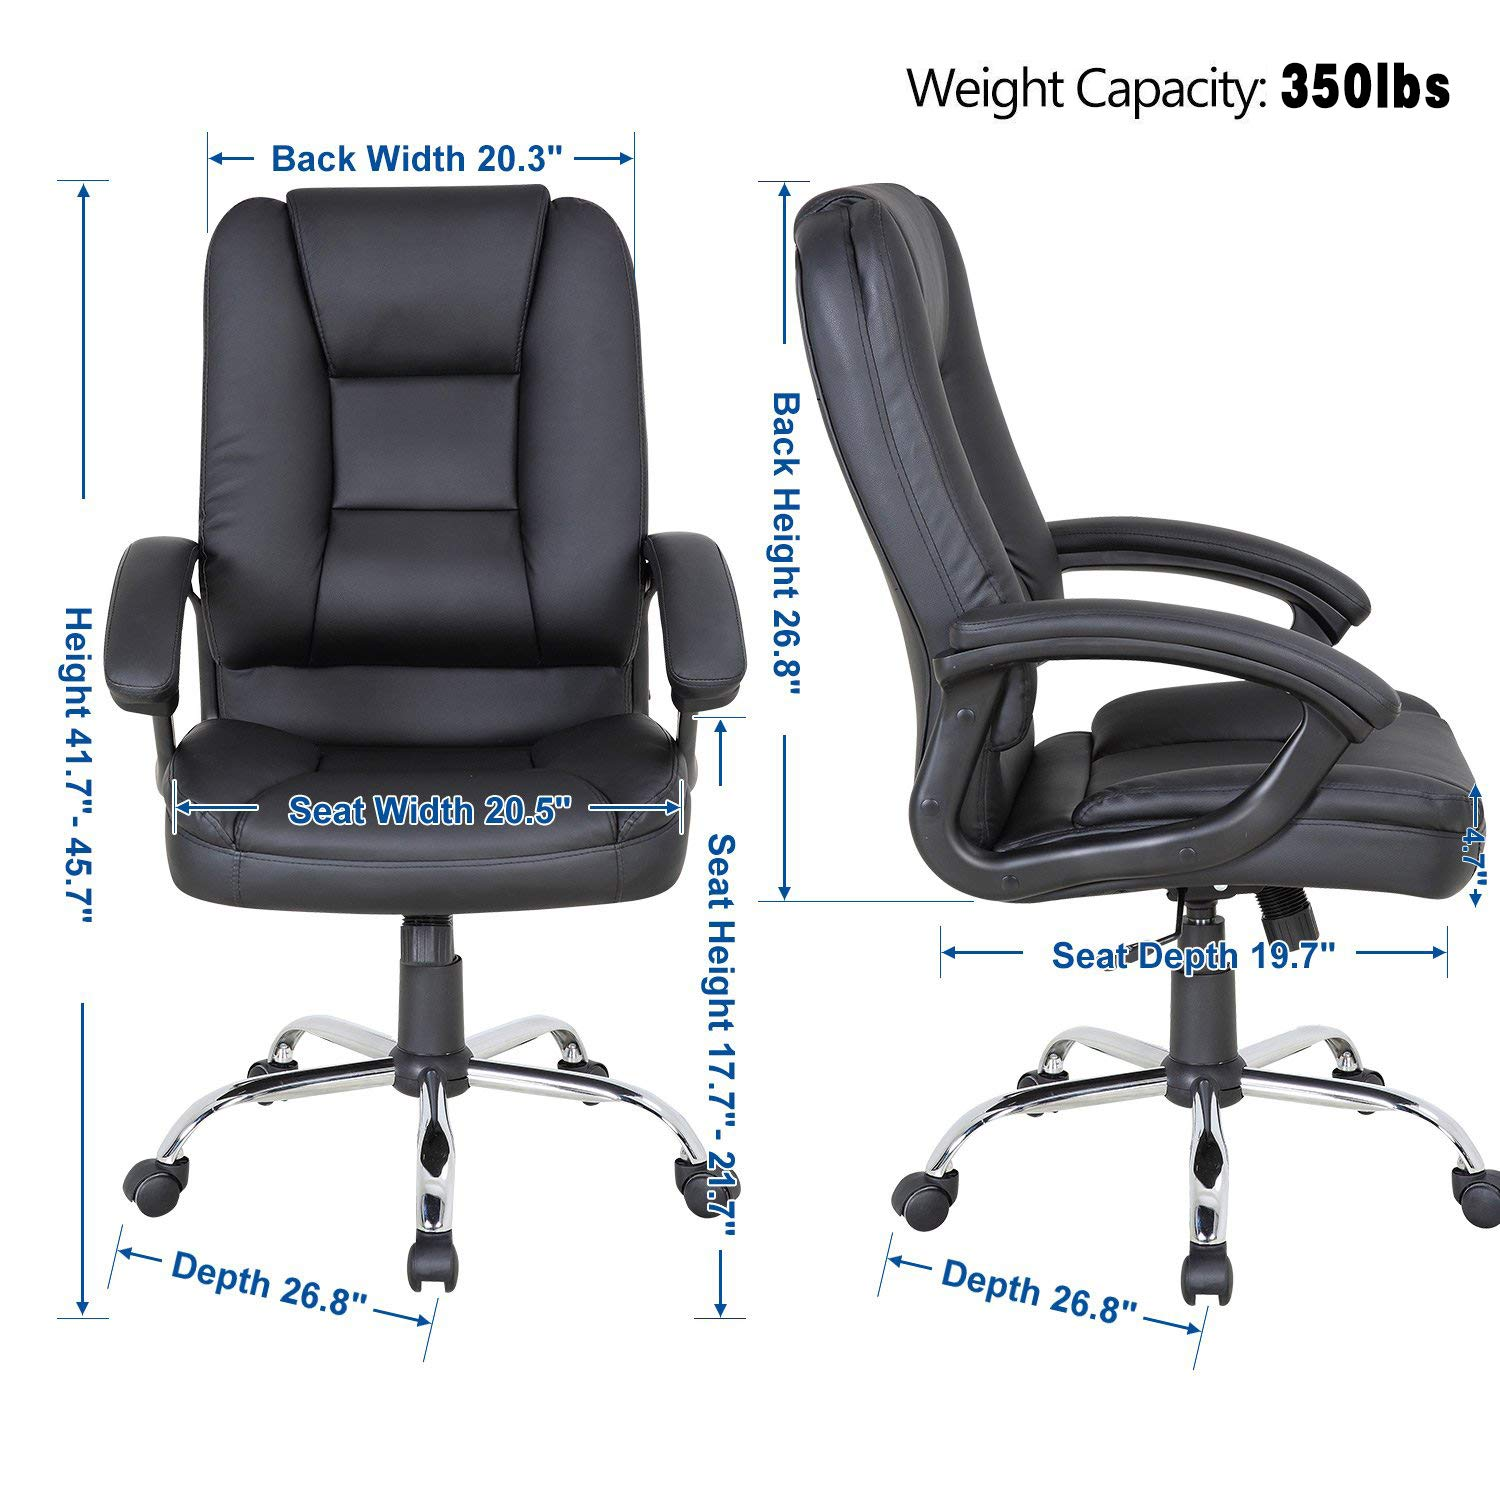 LCH PU Leather Office Chair Swivel Executive Chair with Tilt Function and Thick Seat, Ergonomic Computer Chair Headrest and Lumbar Support 350 LBS (Black) by LCH (Image #6)